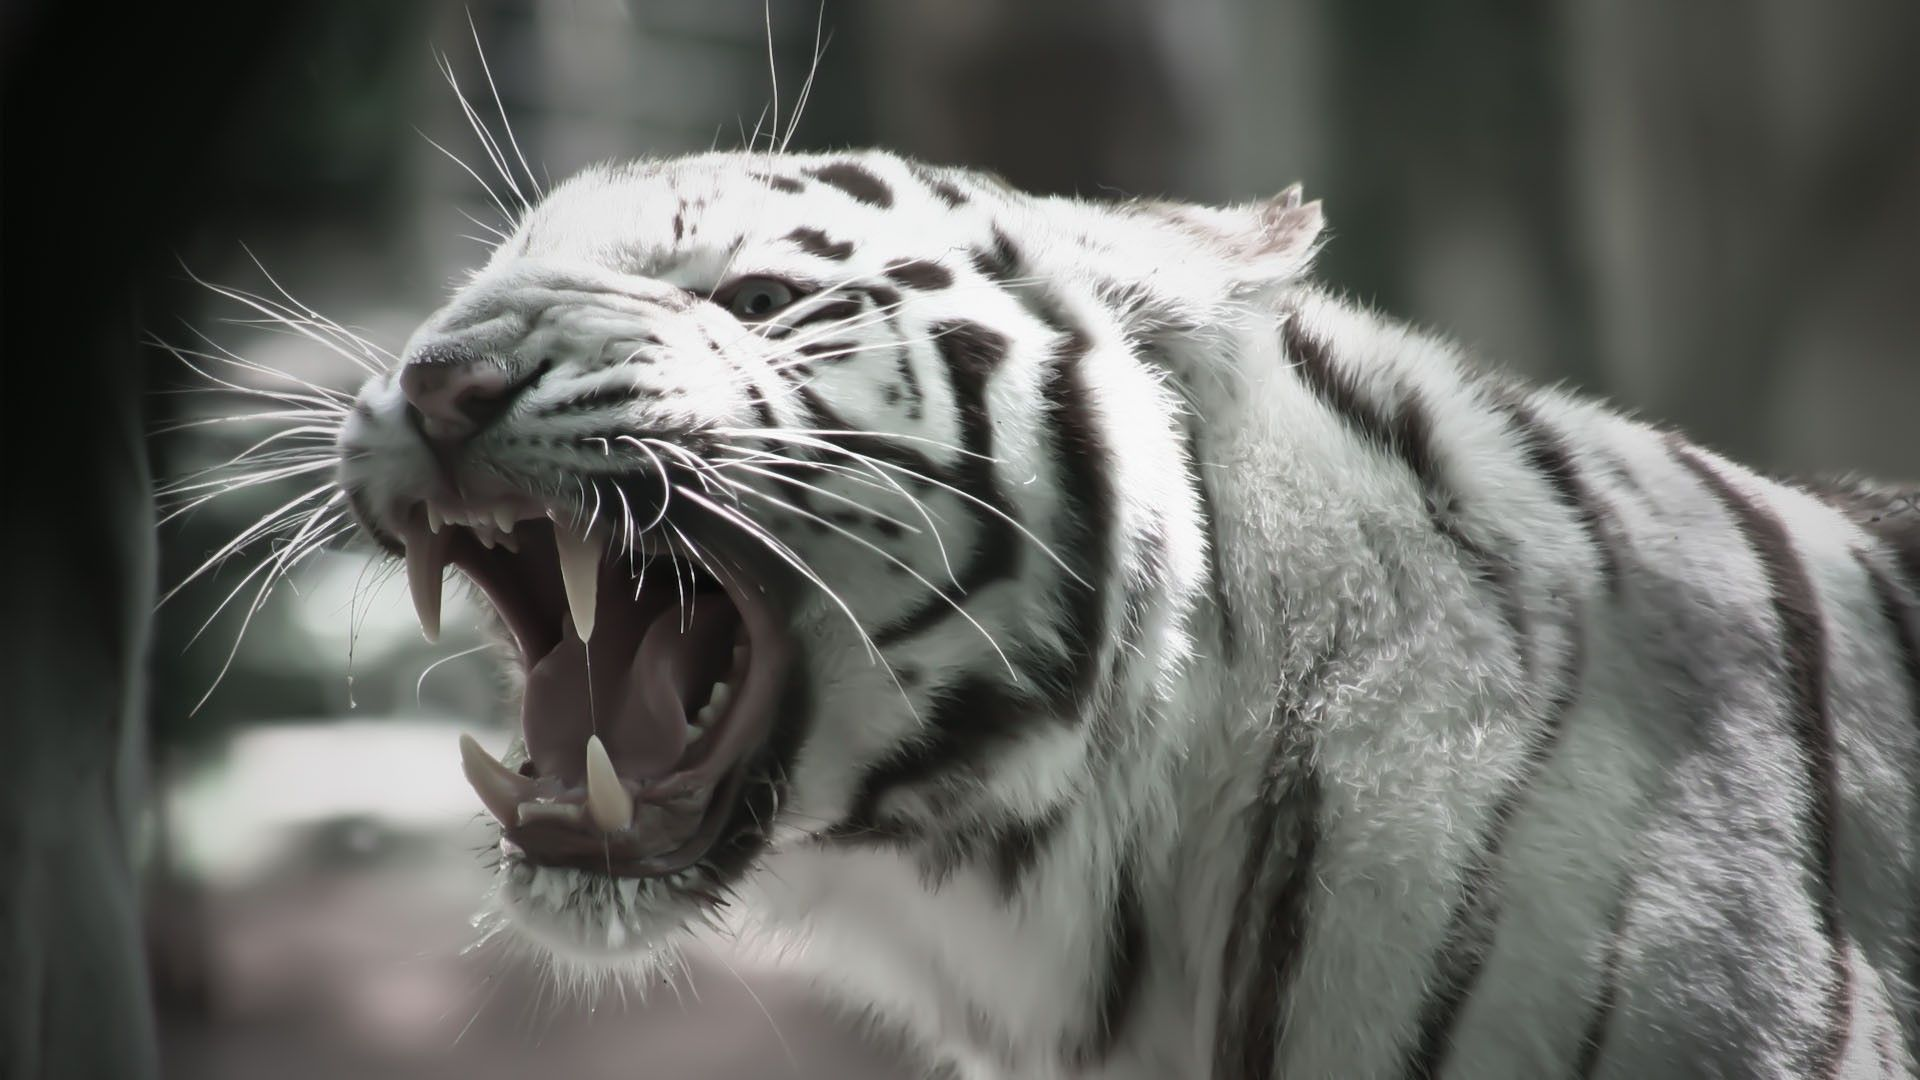 White Tiger Hd Wallpaper Wallpapersafari Tiger Wallpaper Tiger Pictures White Tiger Pictures